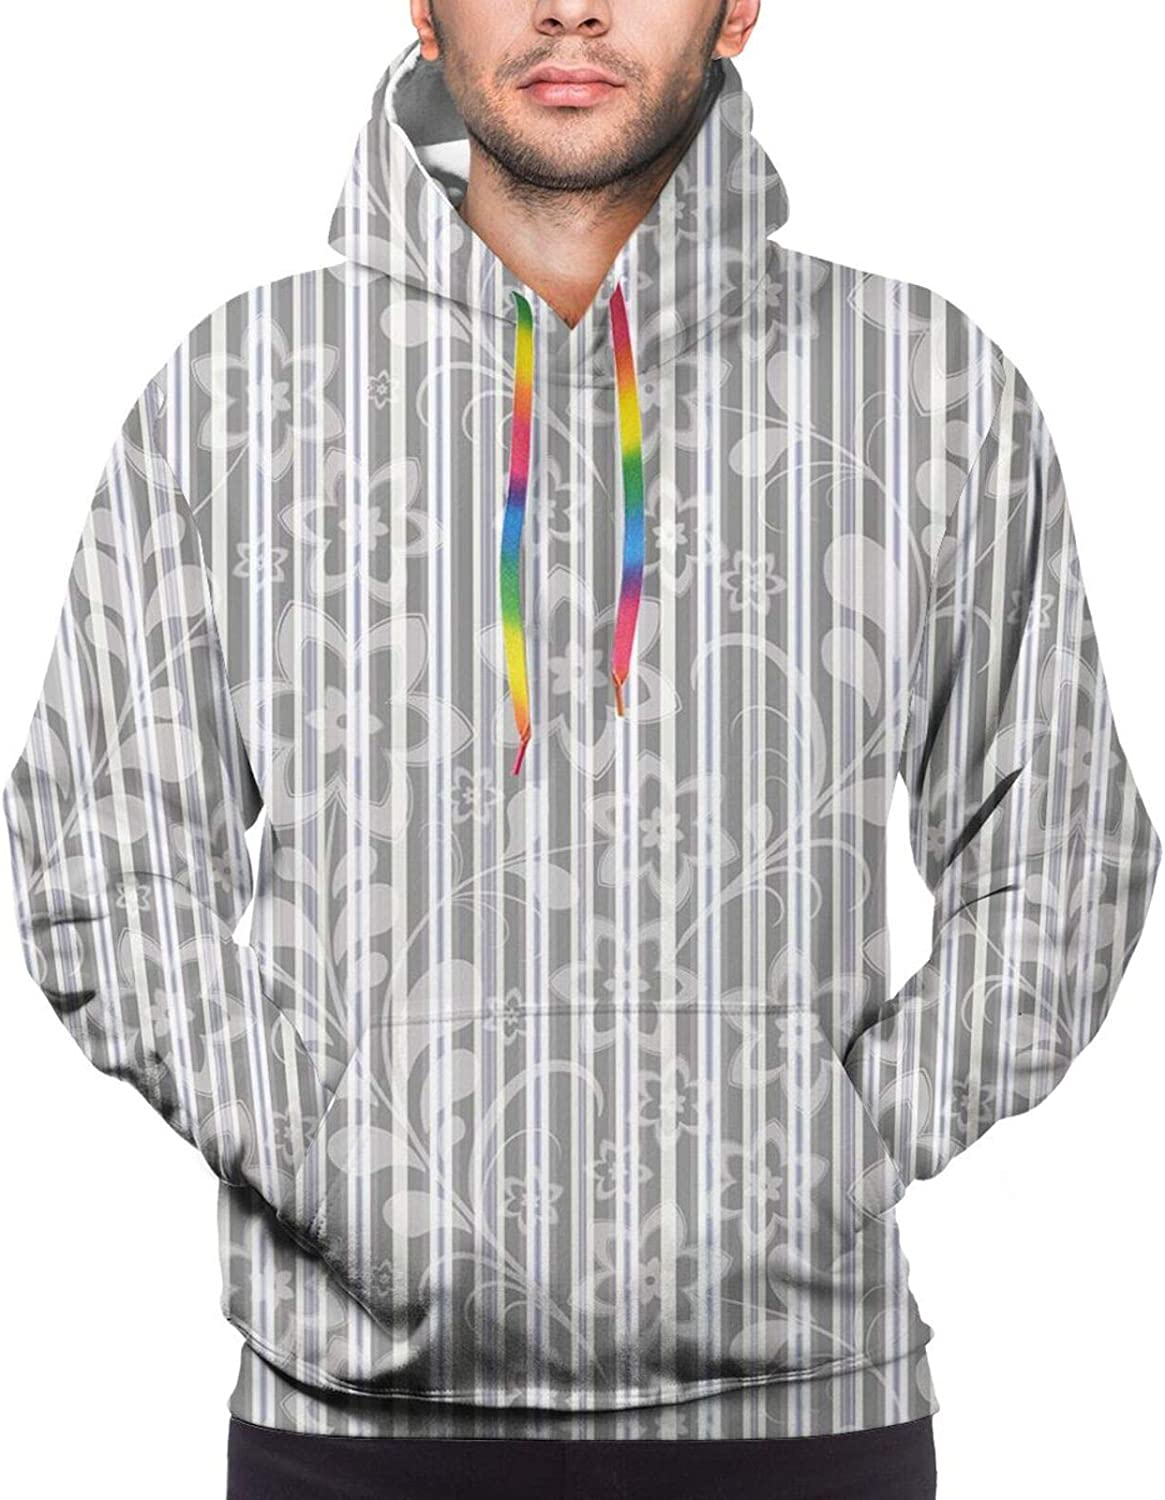 Men's Hoodies Sweatshirts,Floral Eastern Nature with Bird Leaf Paisley Arabesque Inspired Pattern